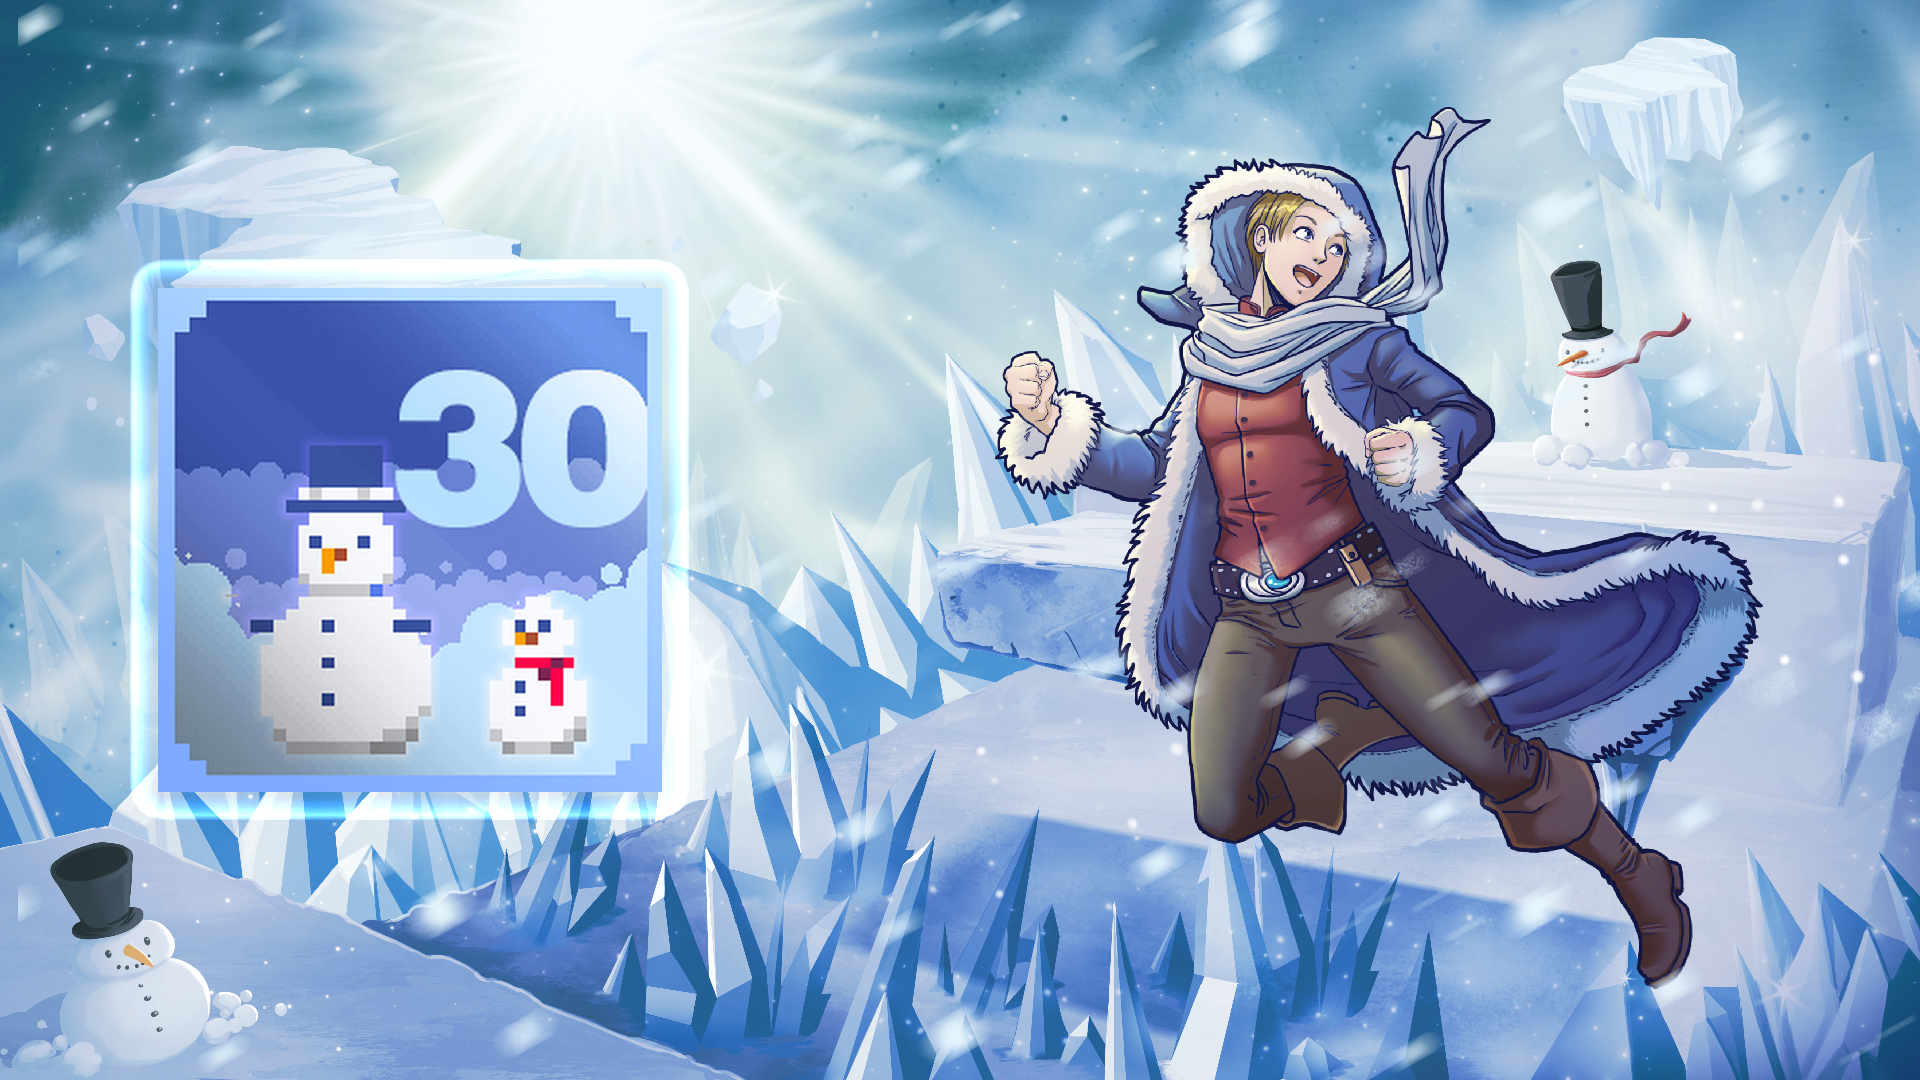 Icon for Level 30